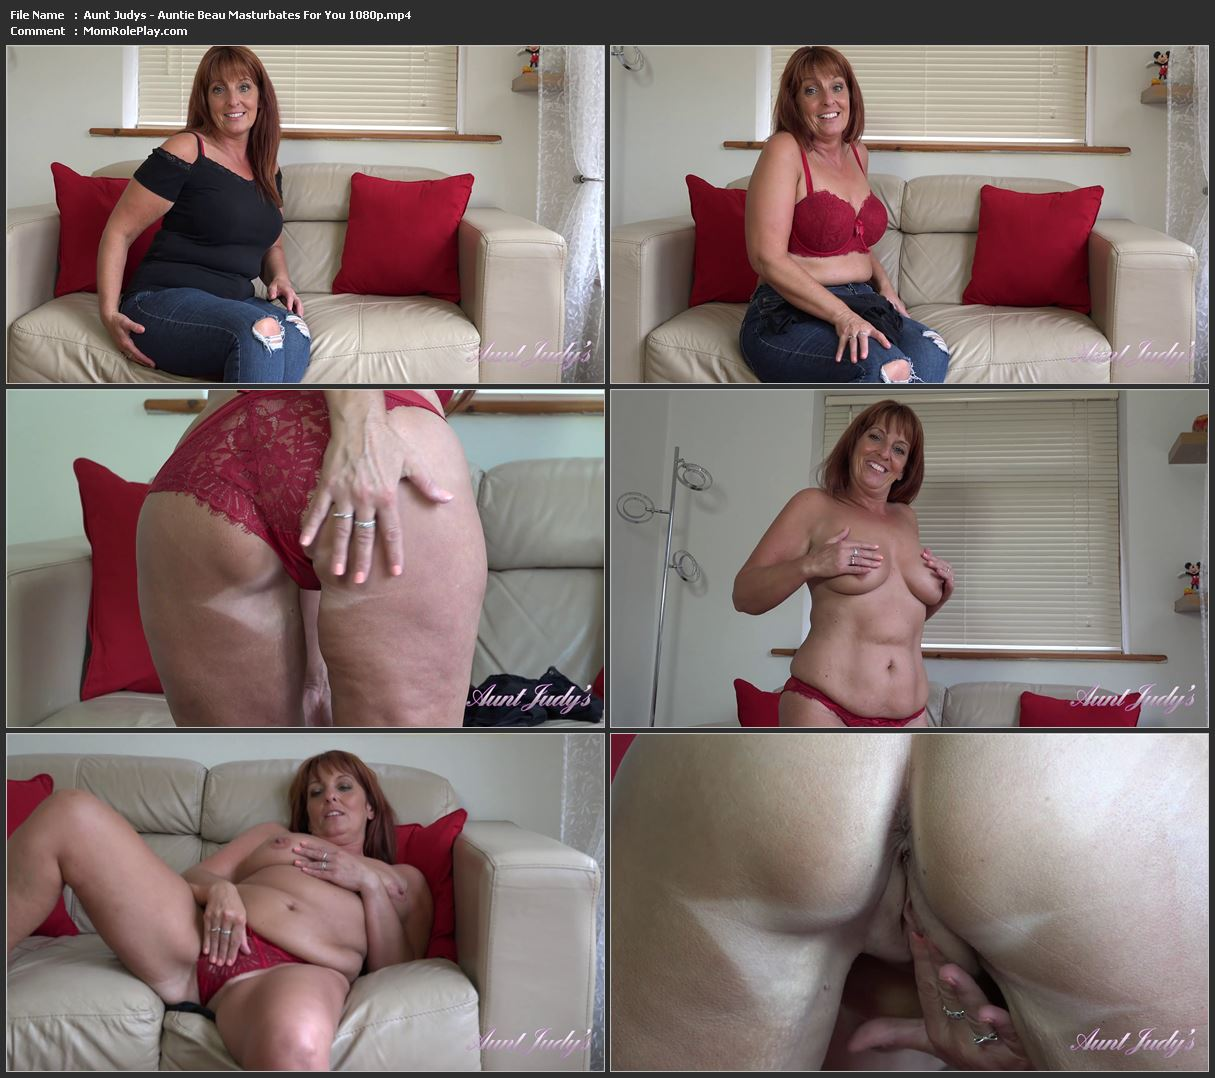 Aunt Judys - Auntie Beau Masturbates For You 1080p